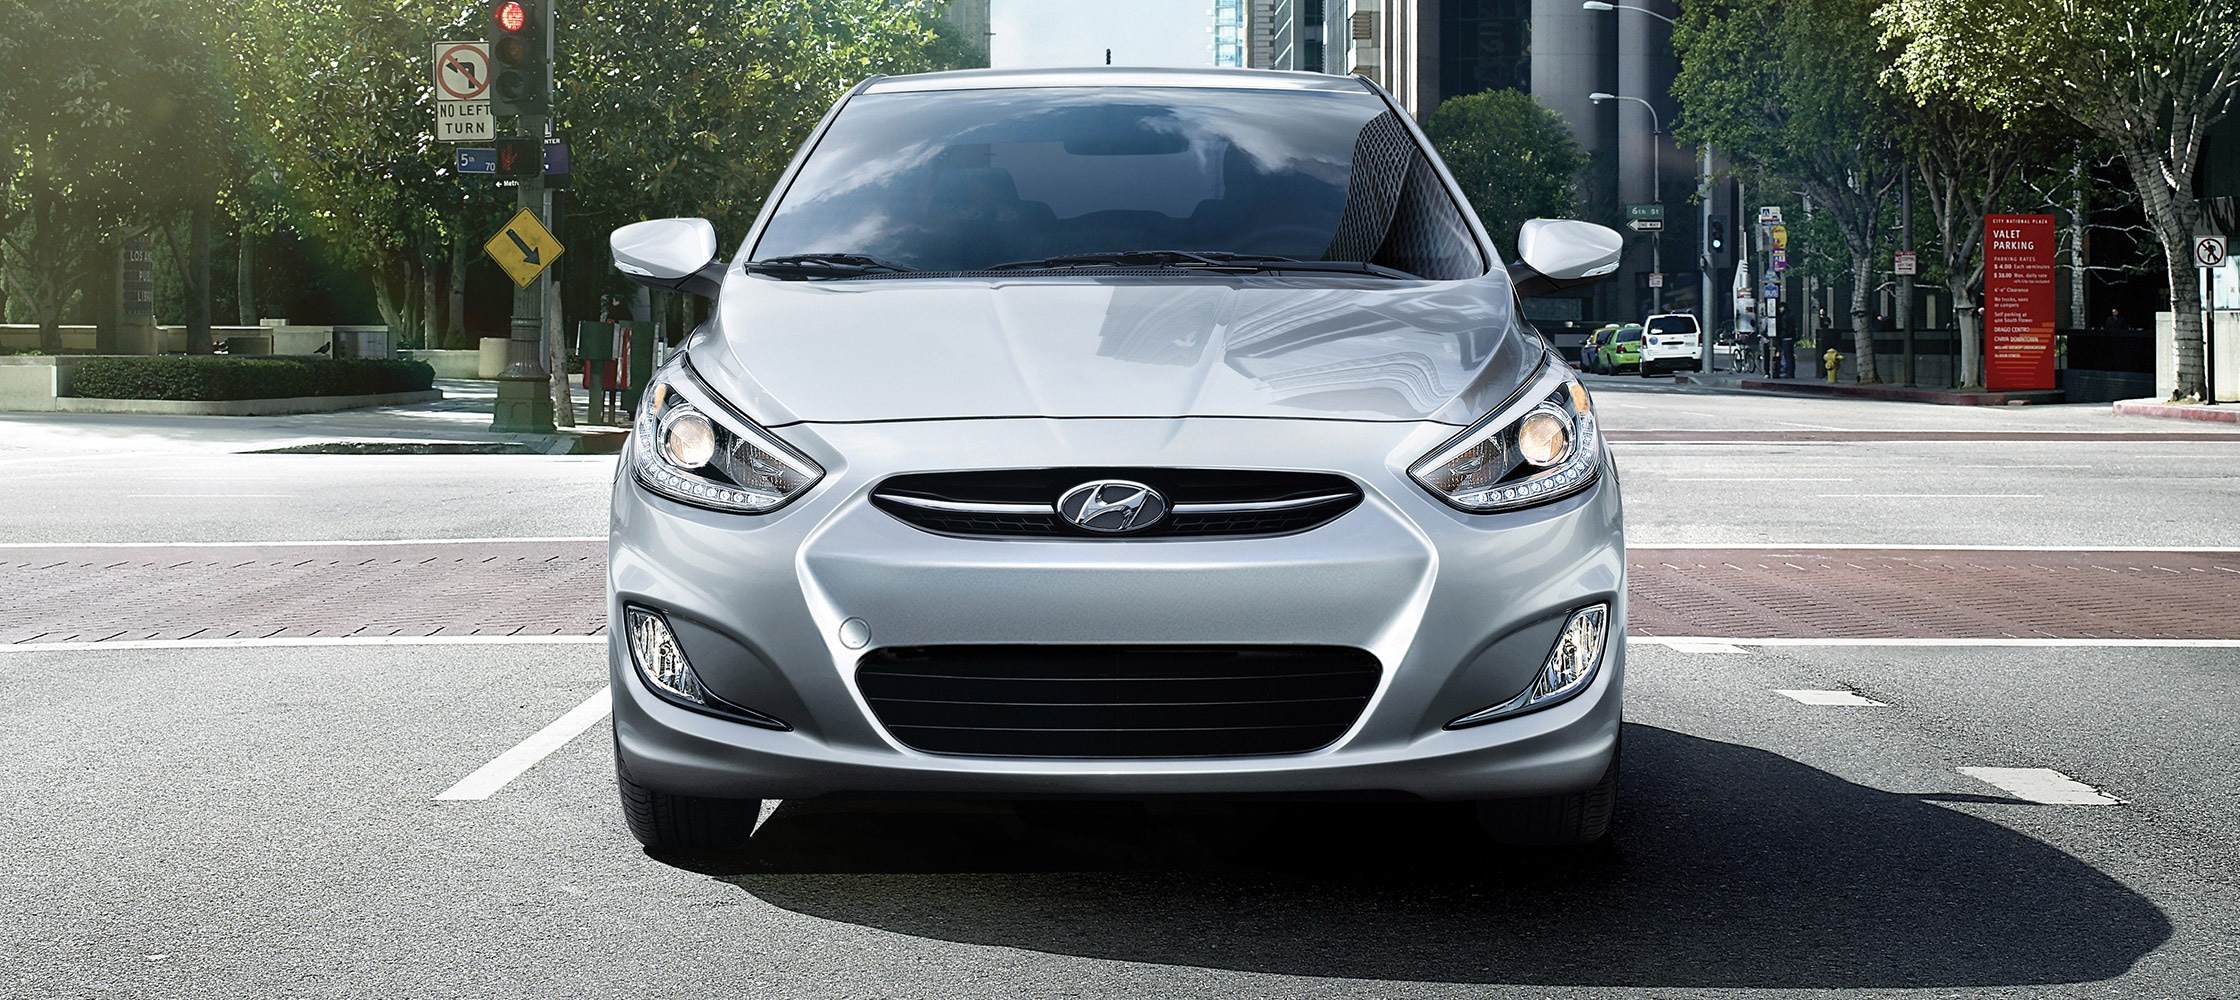 Exterior front photo of Grey Hyundai Accent Sedan 2017 driving on road